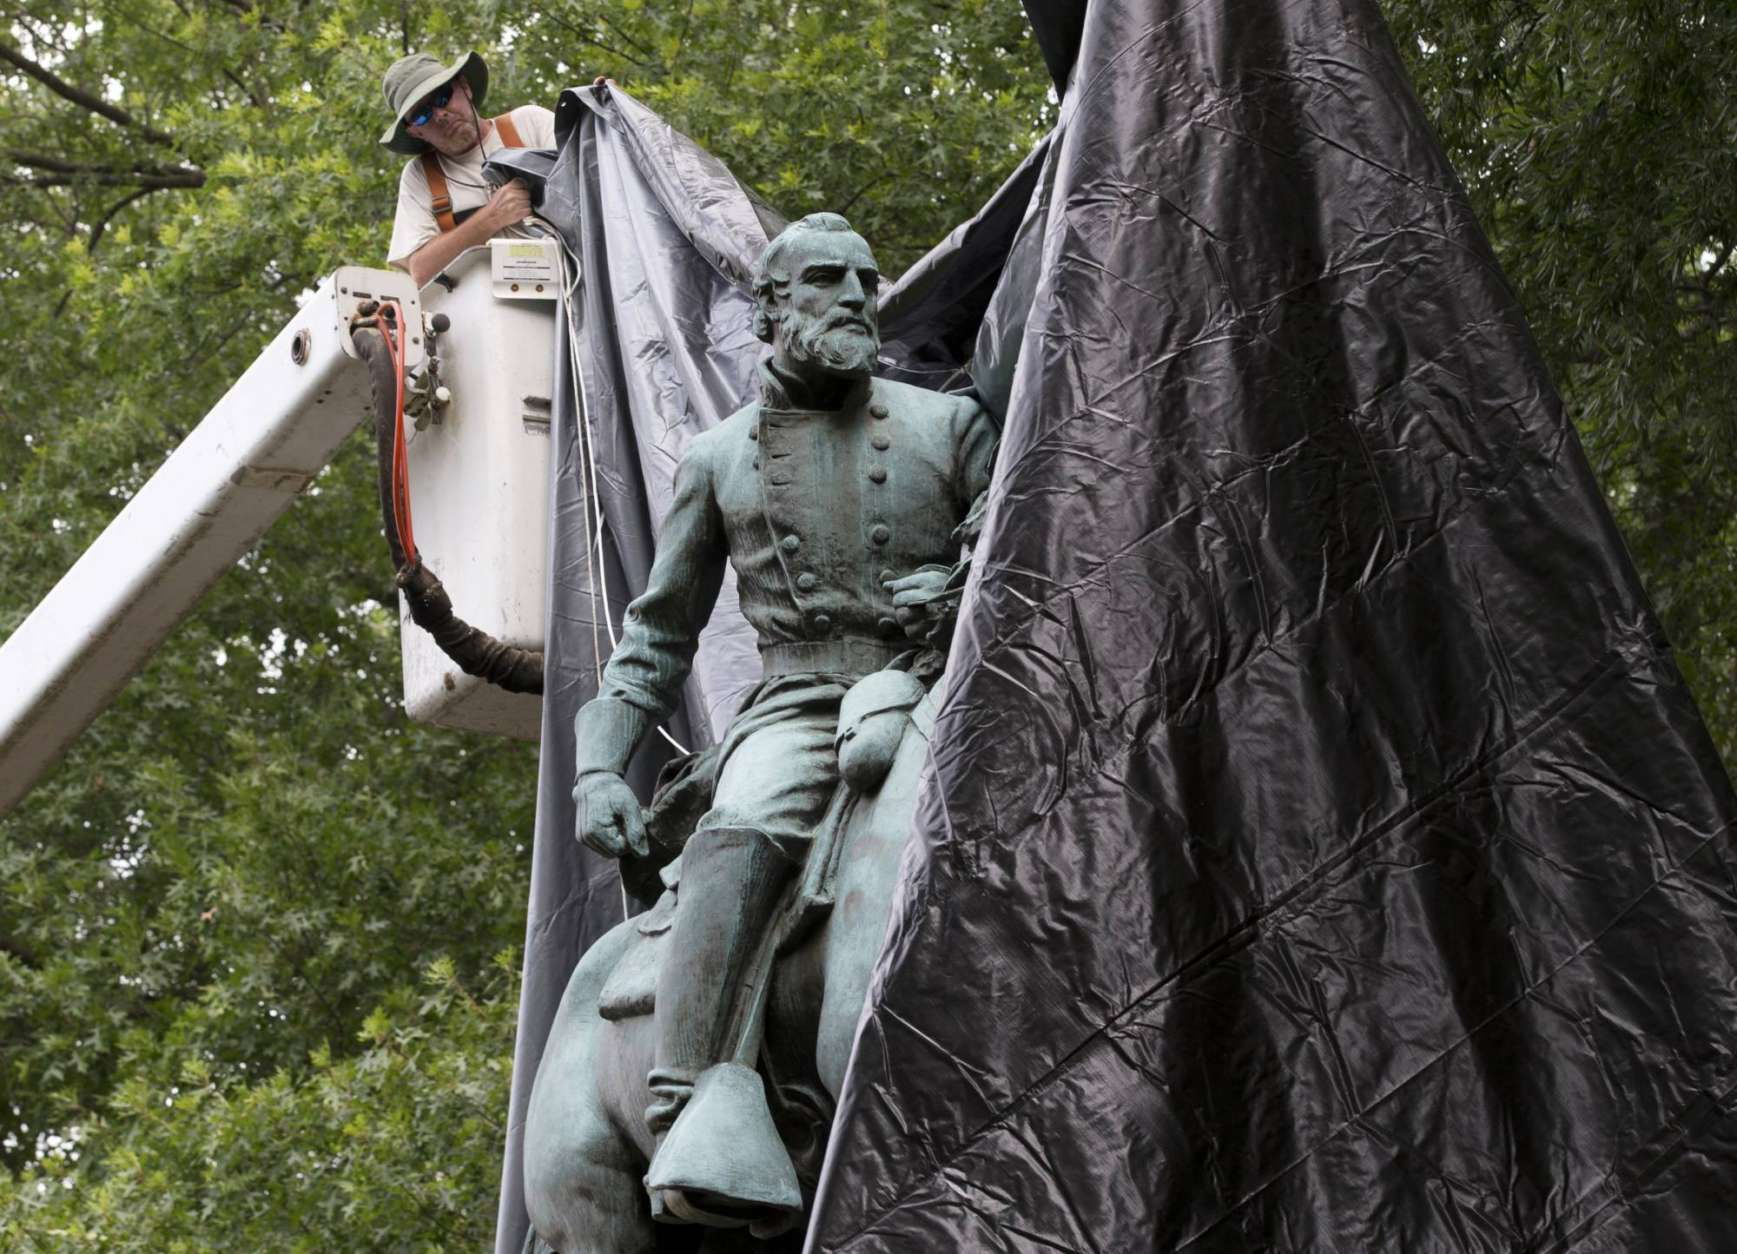 City workers drop a tarp over the statue of Confederate General Stonewall Jackson in Justice park in Charlottesville, Va., Wednesday, Aug. 23, 2017.  The move to cover the statues is intended to symbolize the city's mourning for Heather Heyer, killed while protesting a white nationalist rally earlier this month.  (AP Photo/Steve Helber)